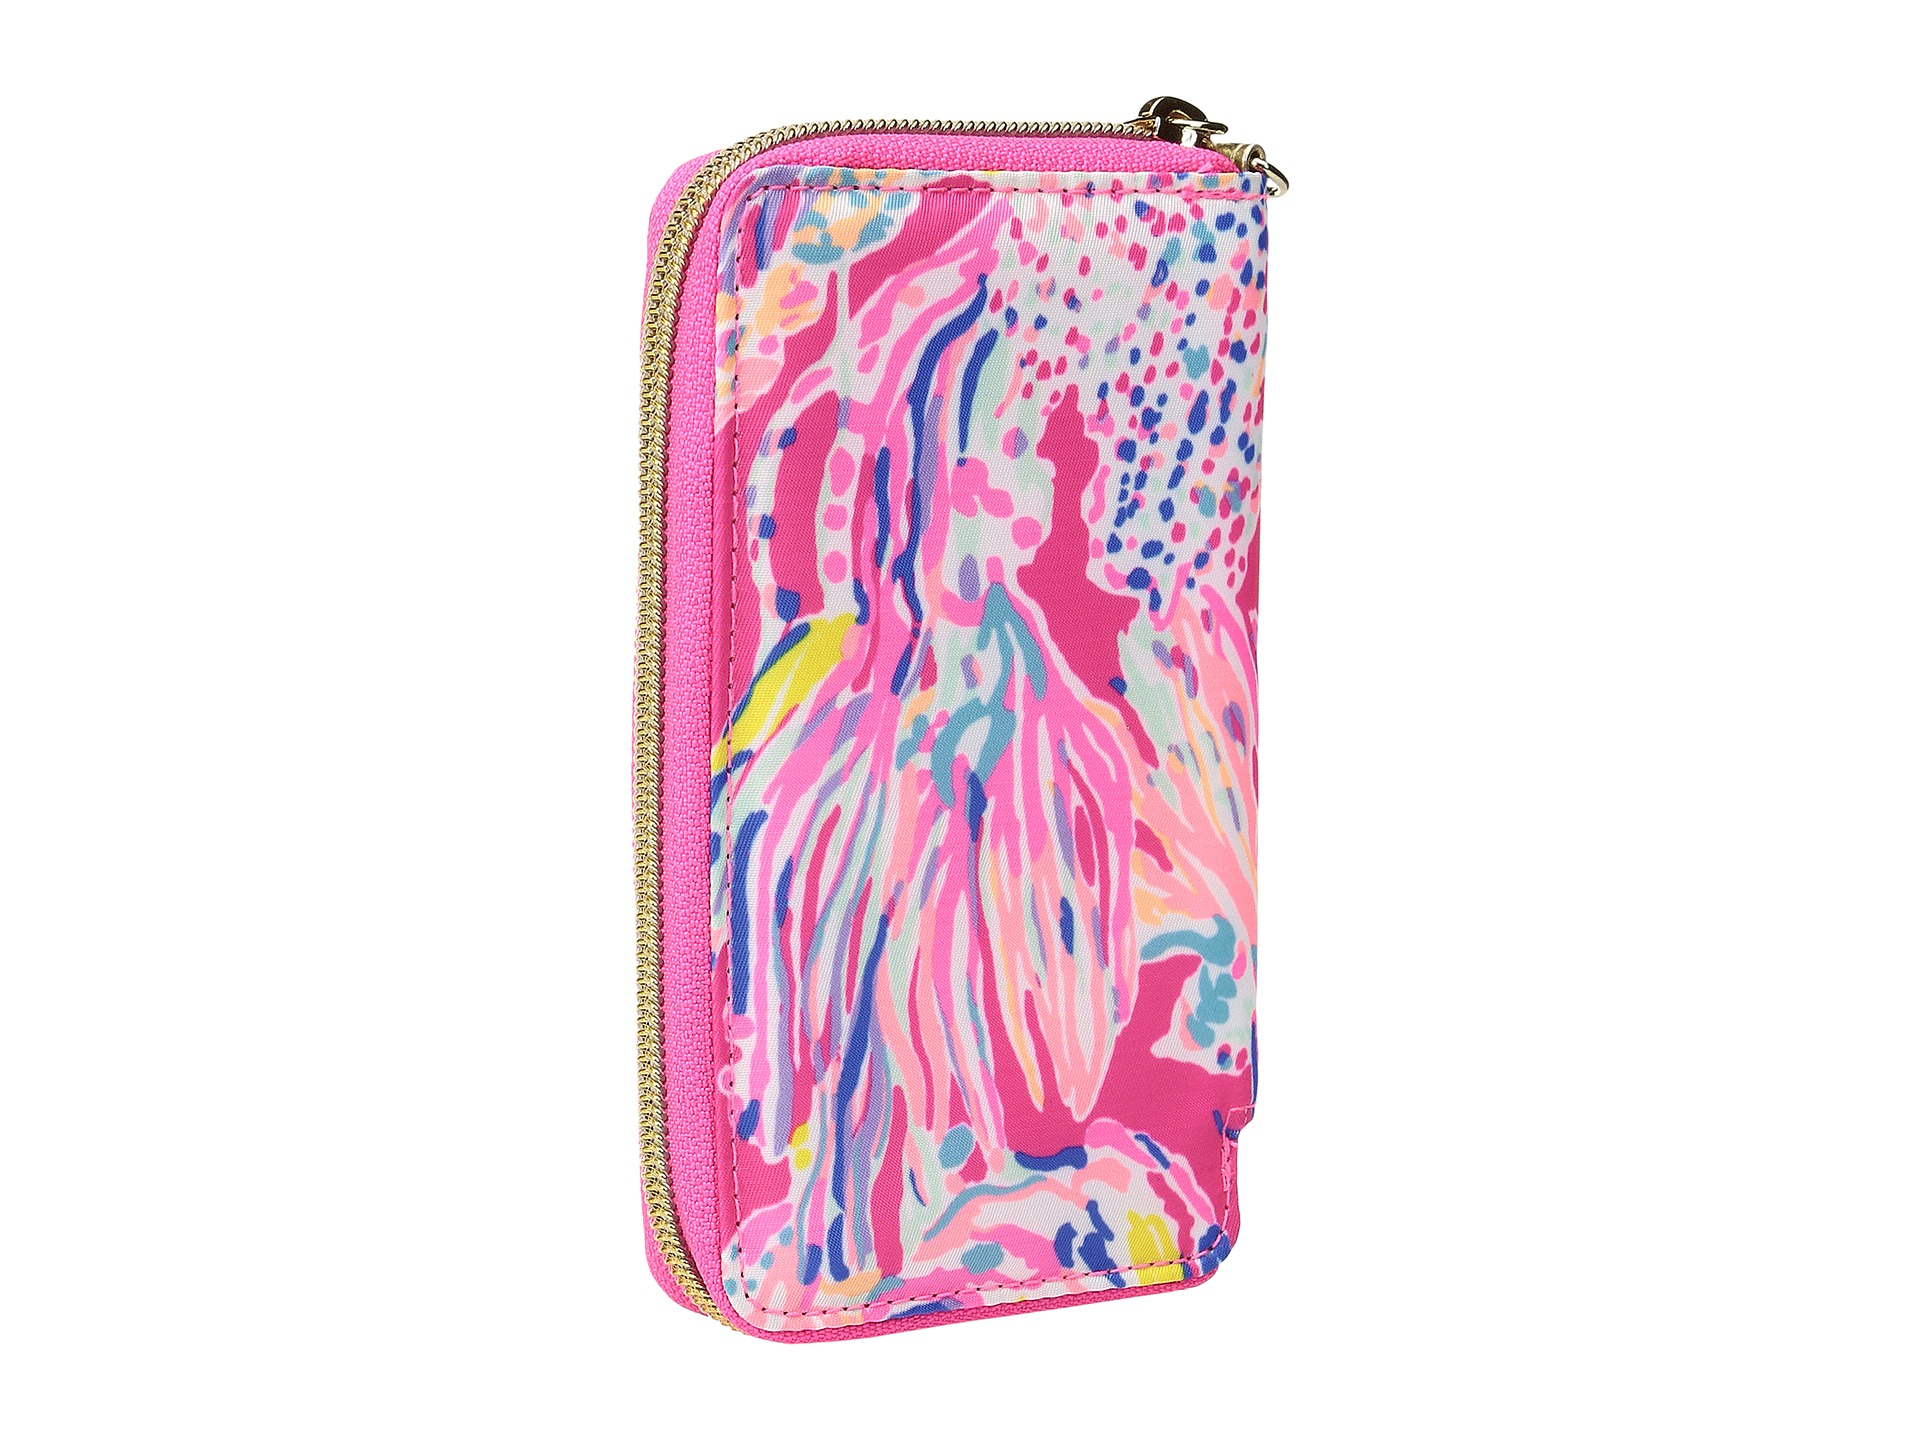 Phi Mu Lilly Pulitzer | Vera Bradley Ipad Covers | Lilly Pulitzer Phone Case